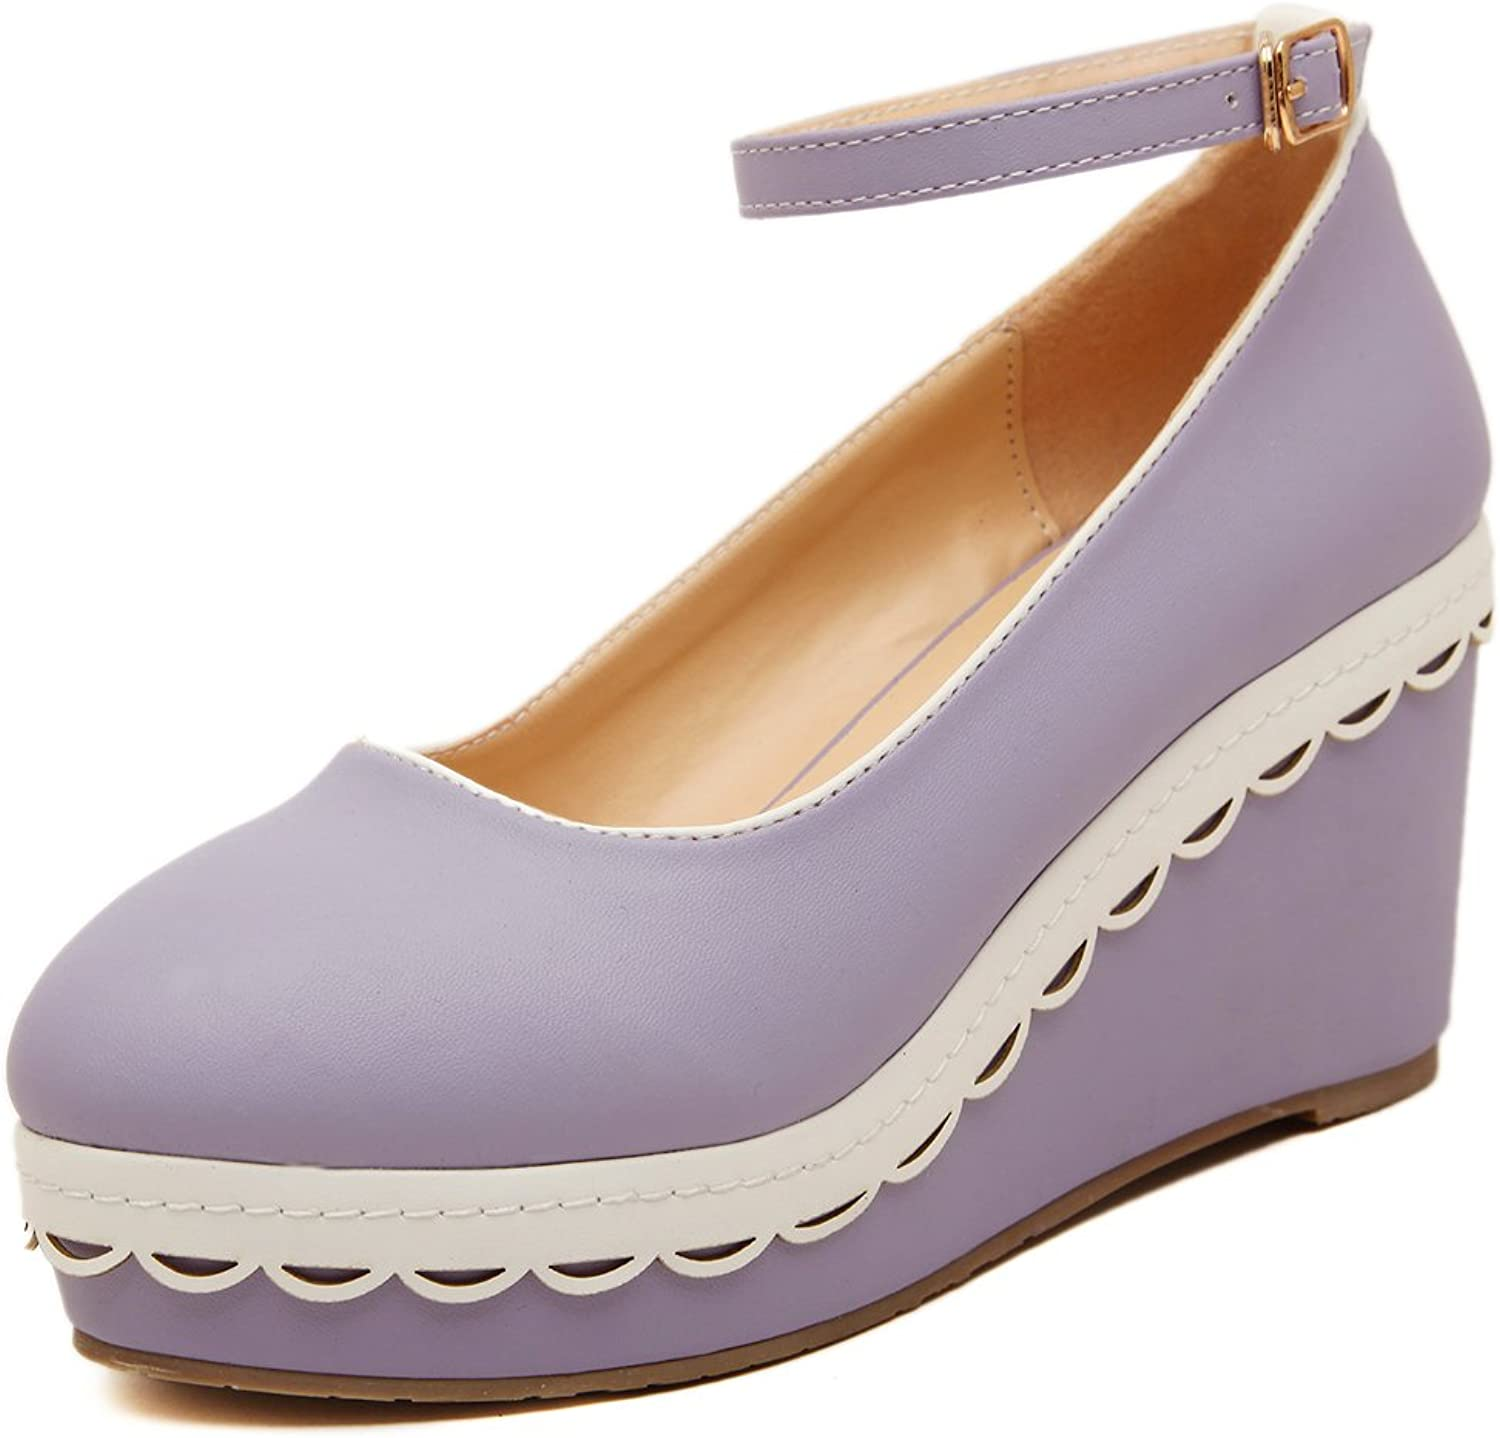 Adelina Women's Bright Candy color Wedge Heel Platform Pumps shoes 1-Purple 39 EU   7.5-8 US